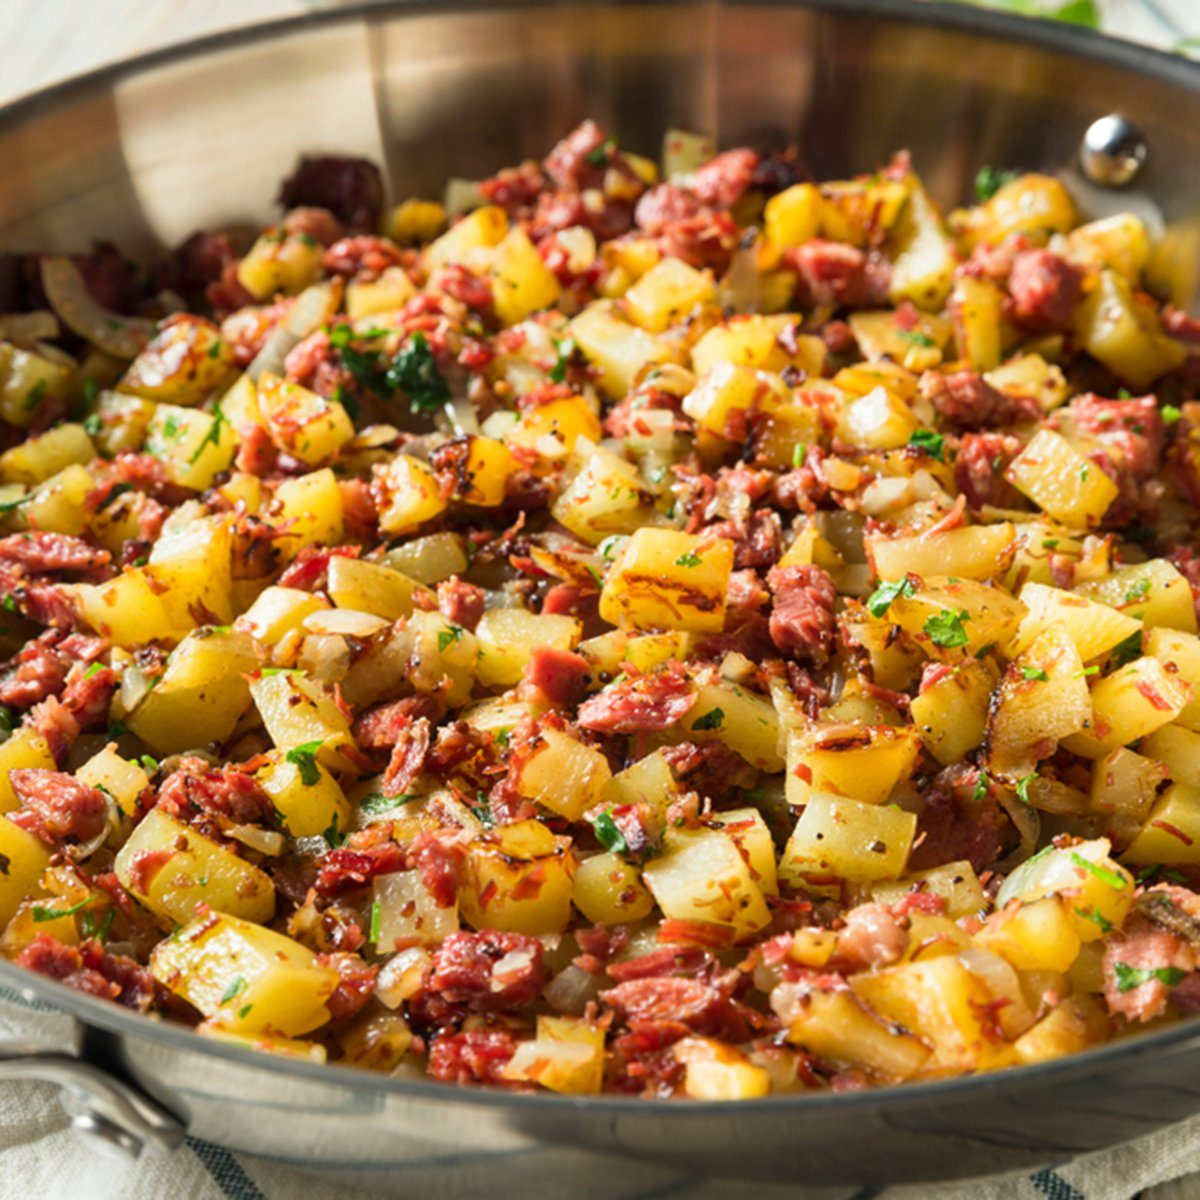 Savory Homemade Corned Beef Hash in a Pan